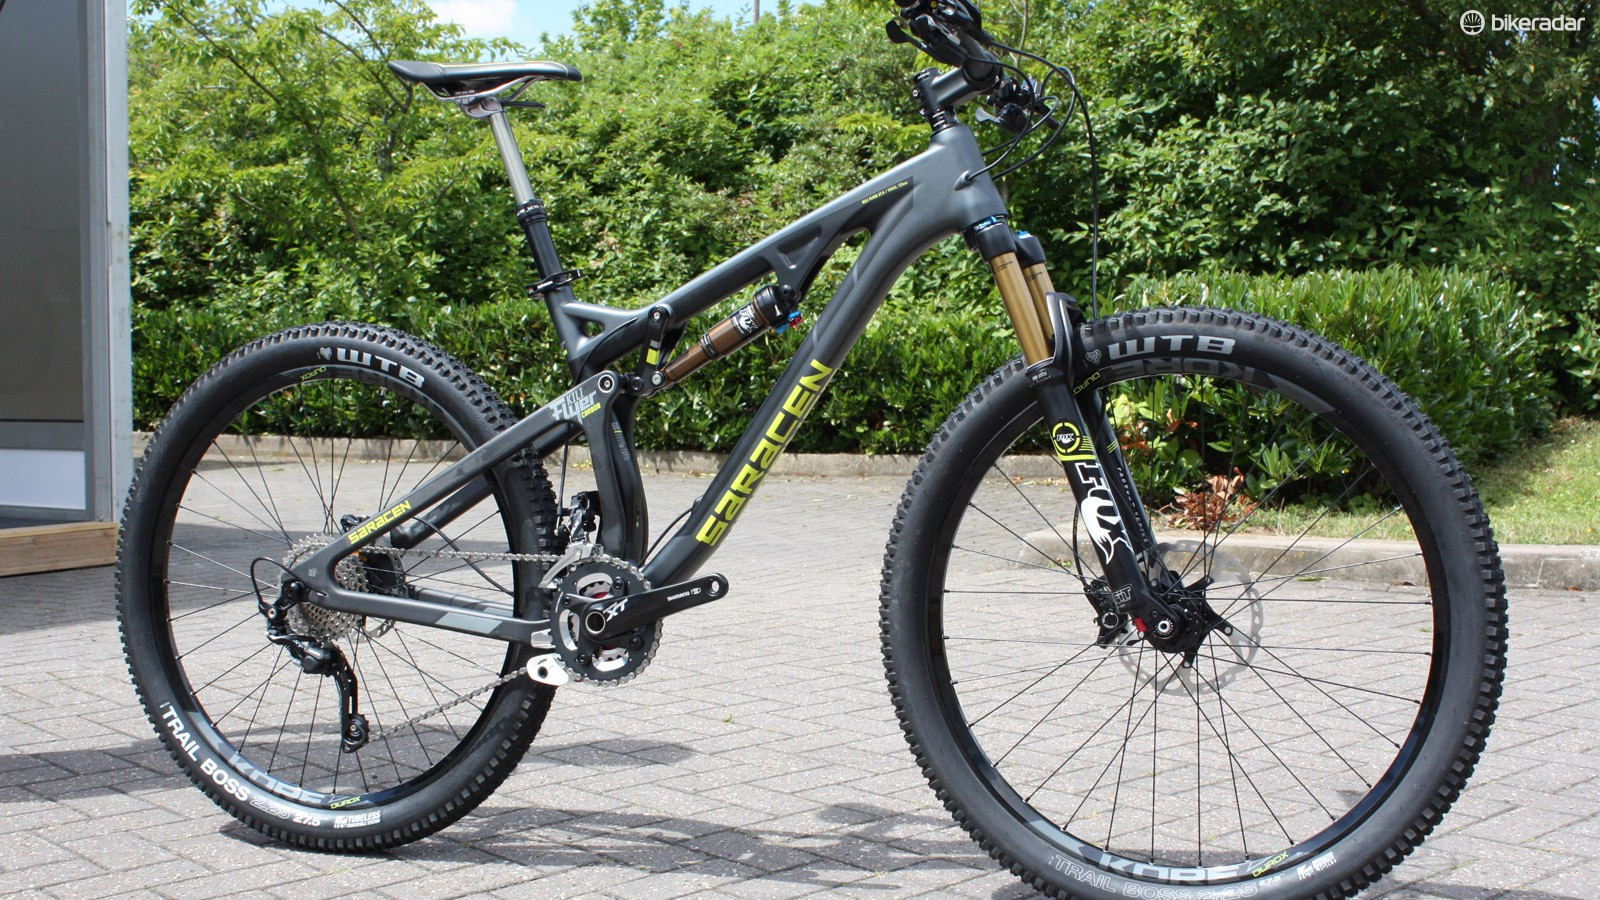 The range topping Kili Flyer Team now uses a fully carbon frame